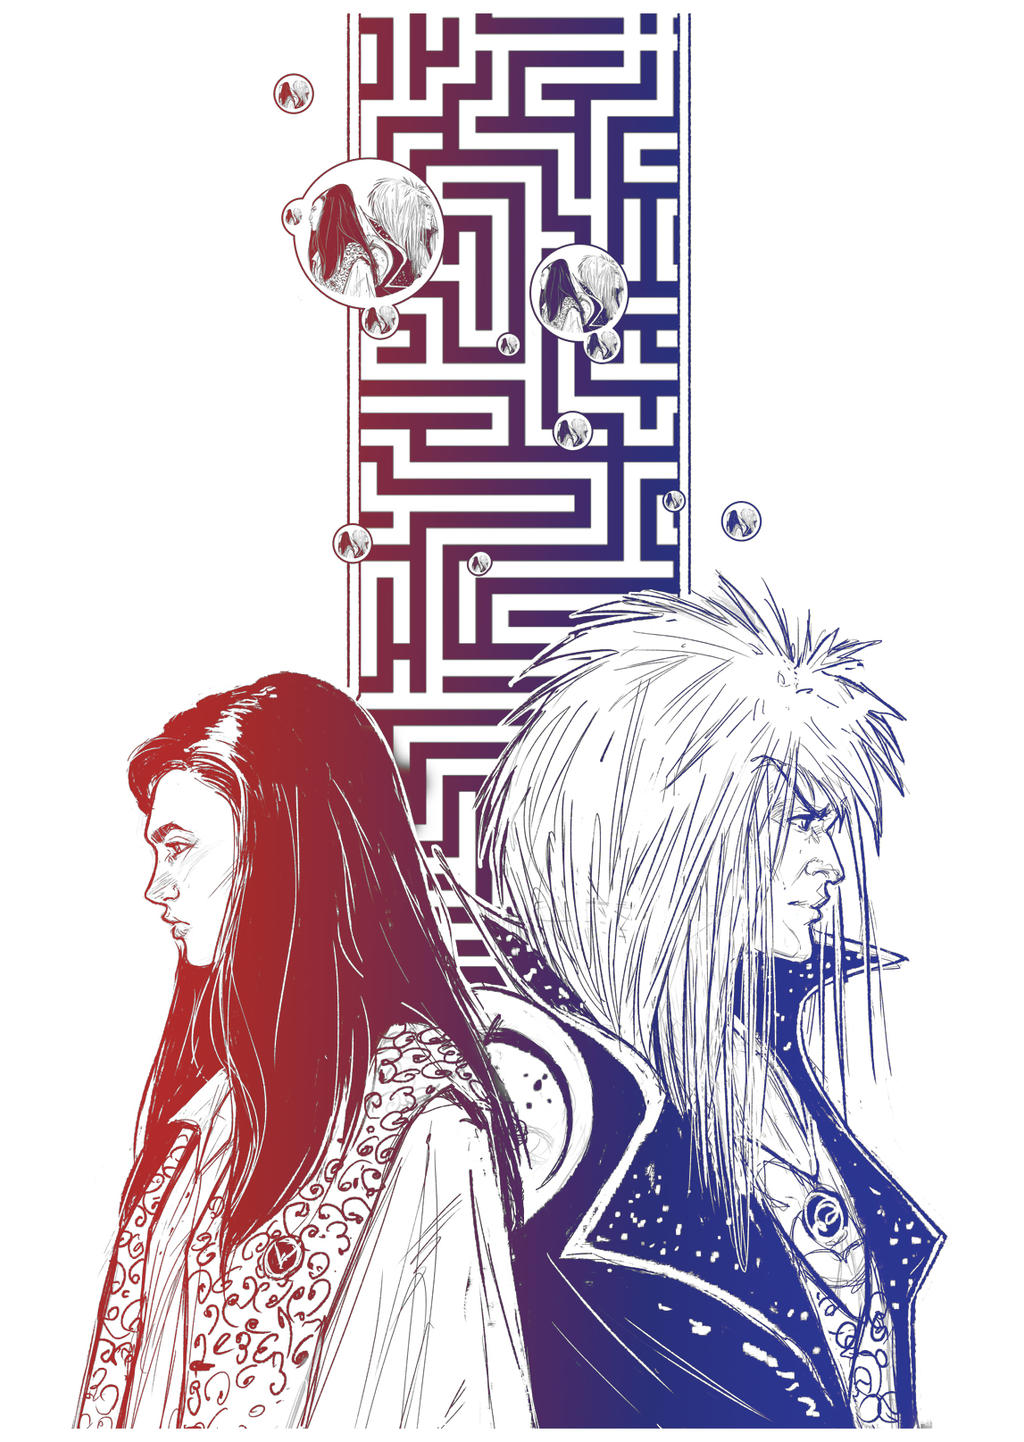 Labyrinth by Robbertopoli